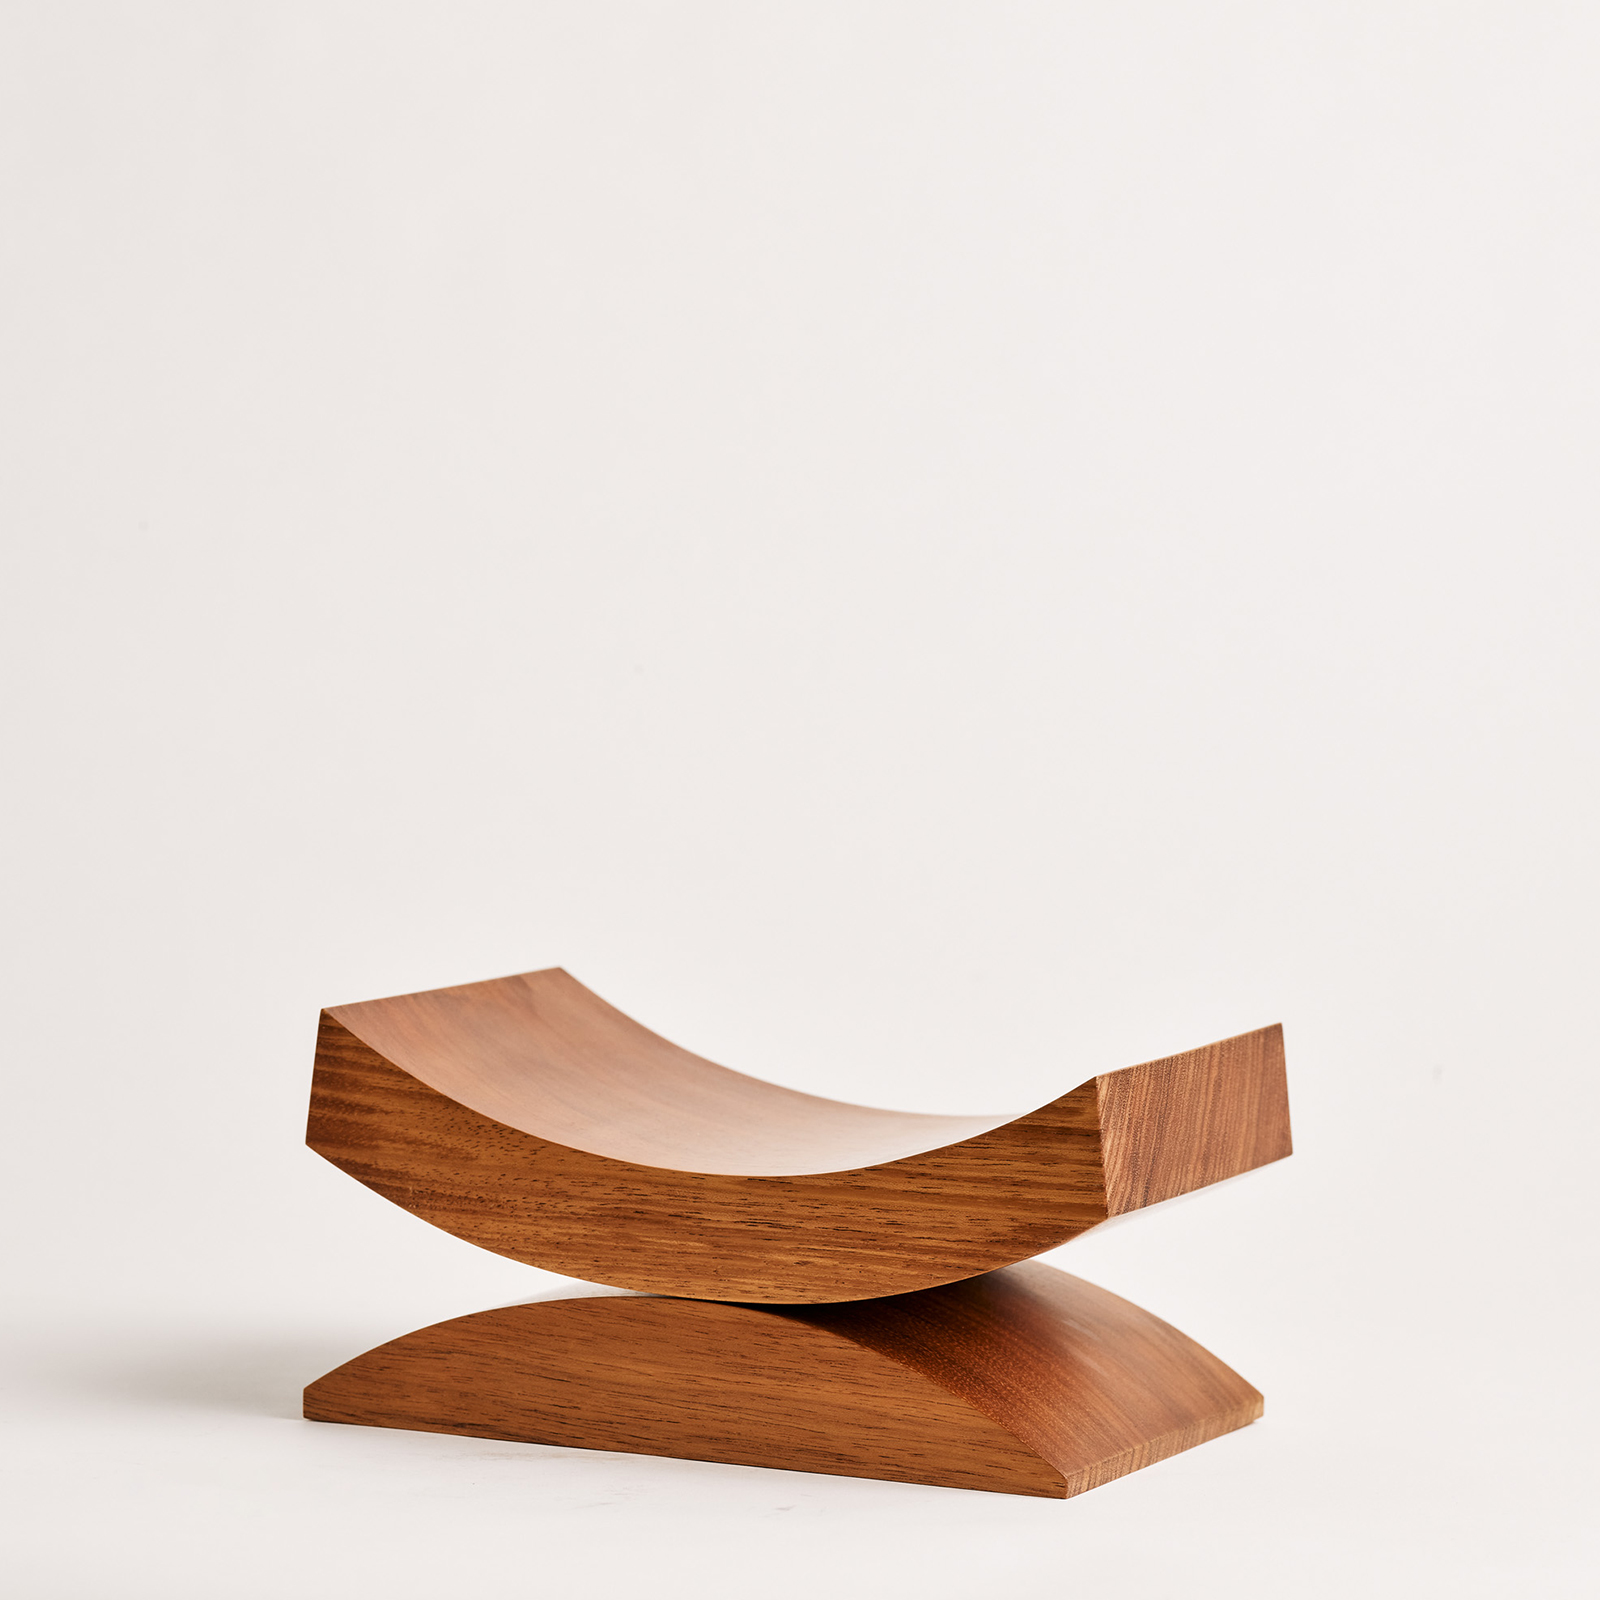 Timber Forms In Tasmanian Blackwood And Limited Edition By Zachary Frankel Hero